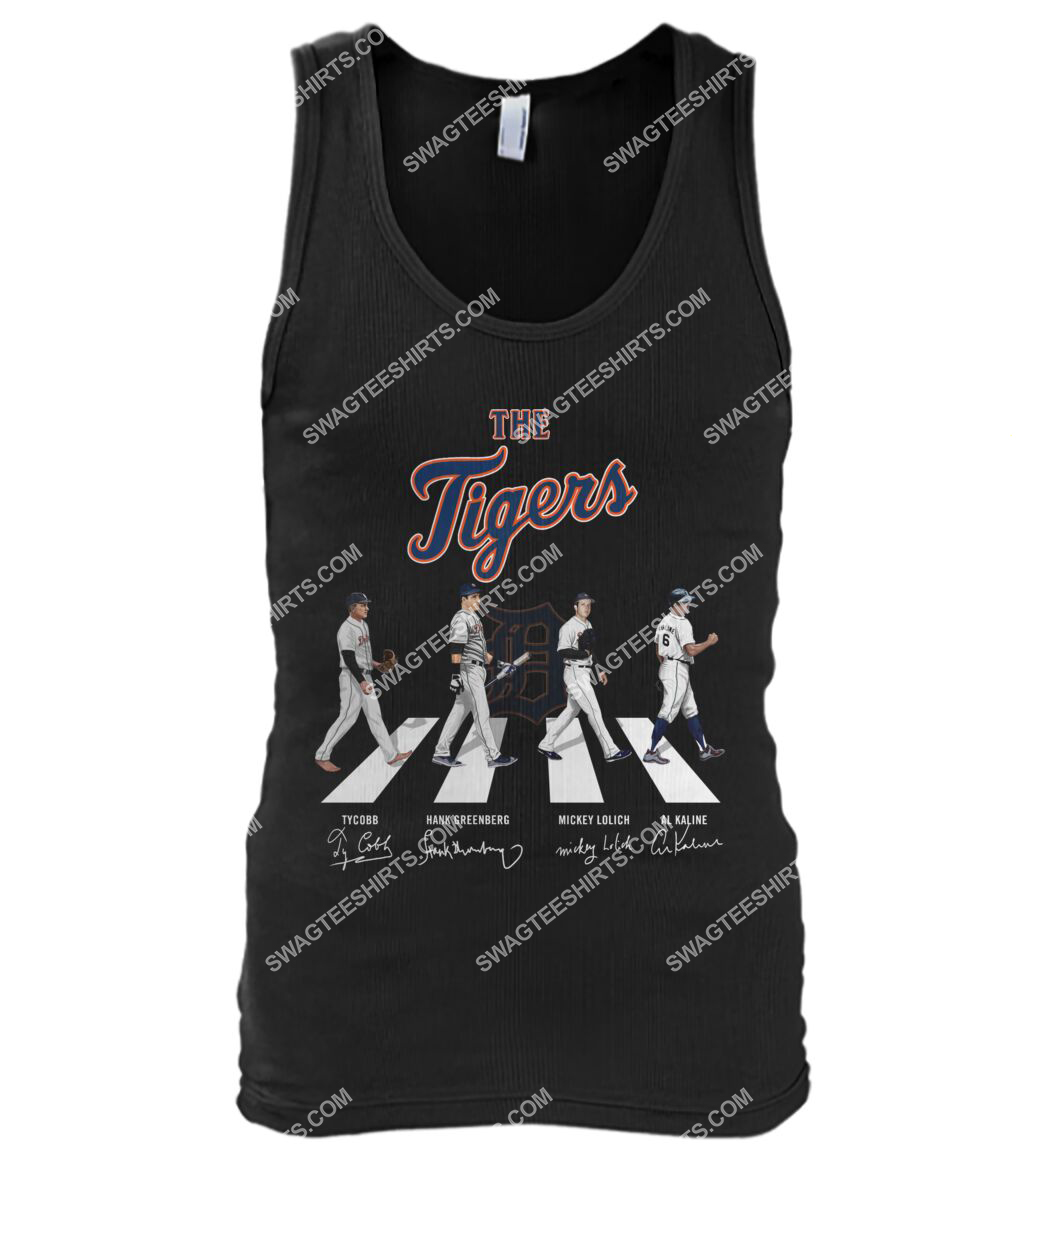 abbey road the detroit tigers signatures tank top 1